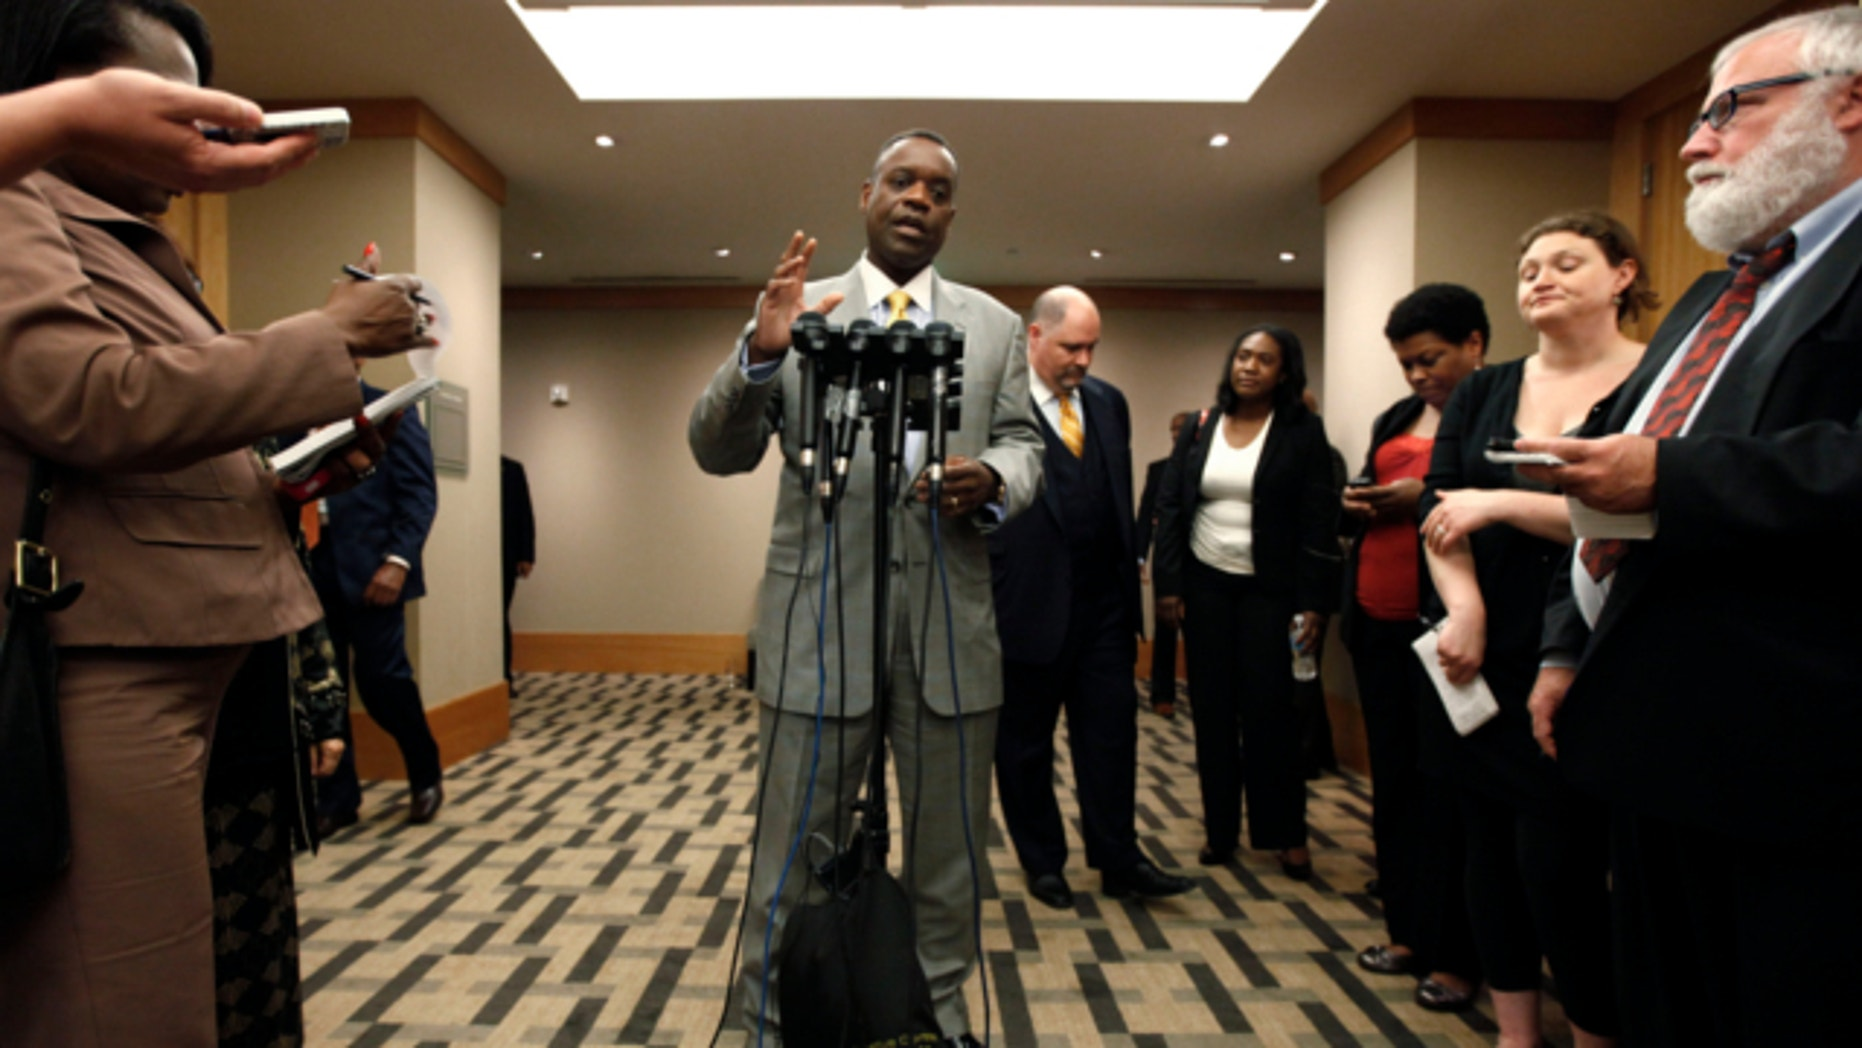 June 14, 2013: Detroit emergency manager Kevyn Orr speaks with reporters after a meeting with creditors in Romulus, Mich.